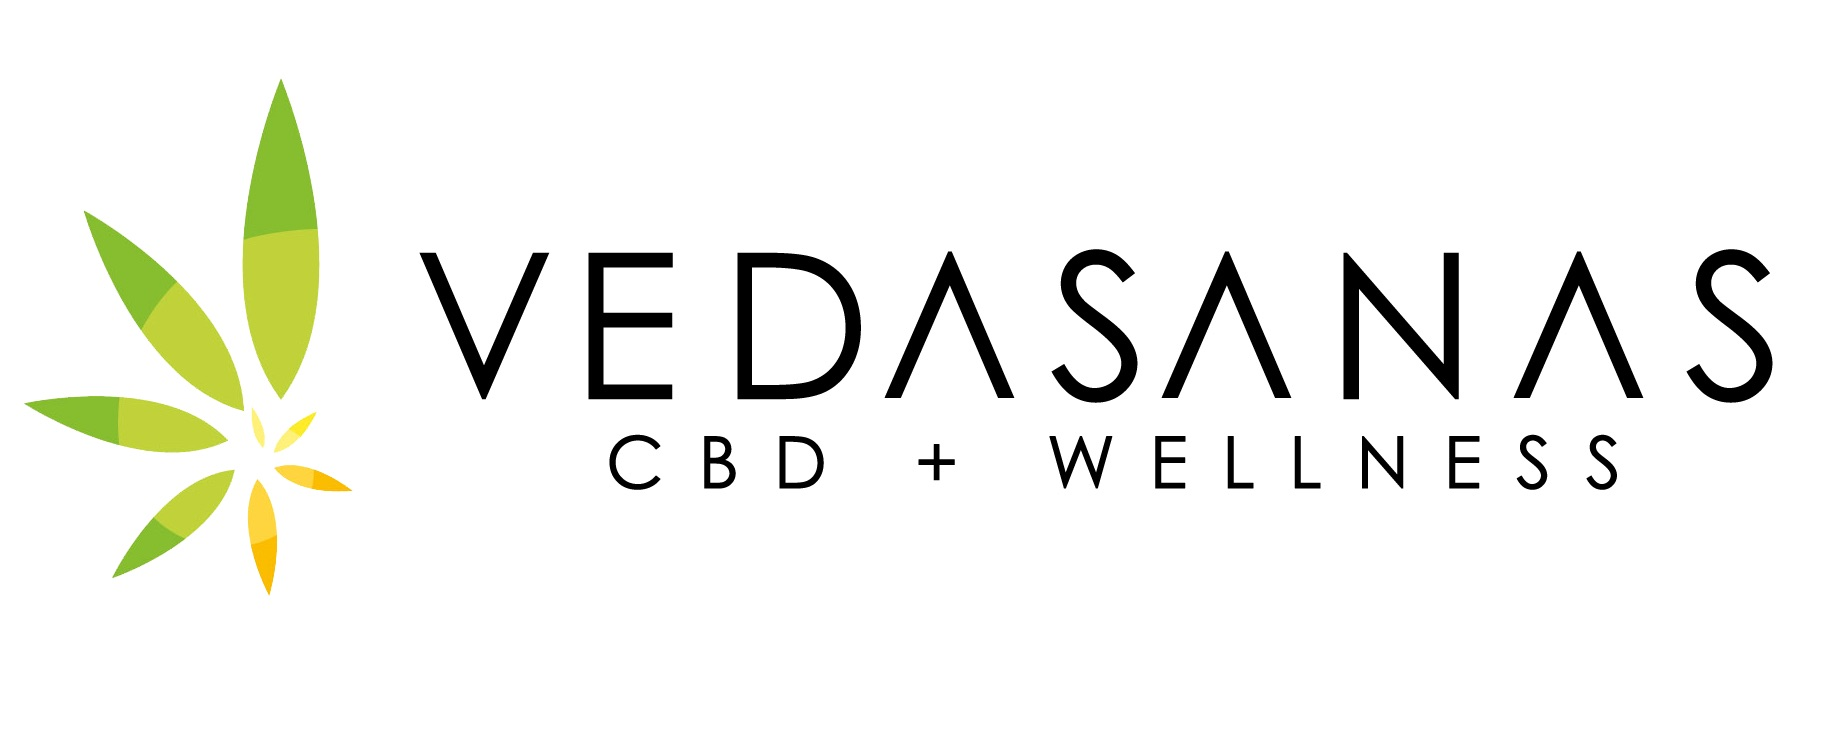 Ways To Cope With Pandemic Stress By CDC Look To Vedasanas CBD